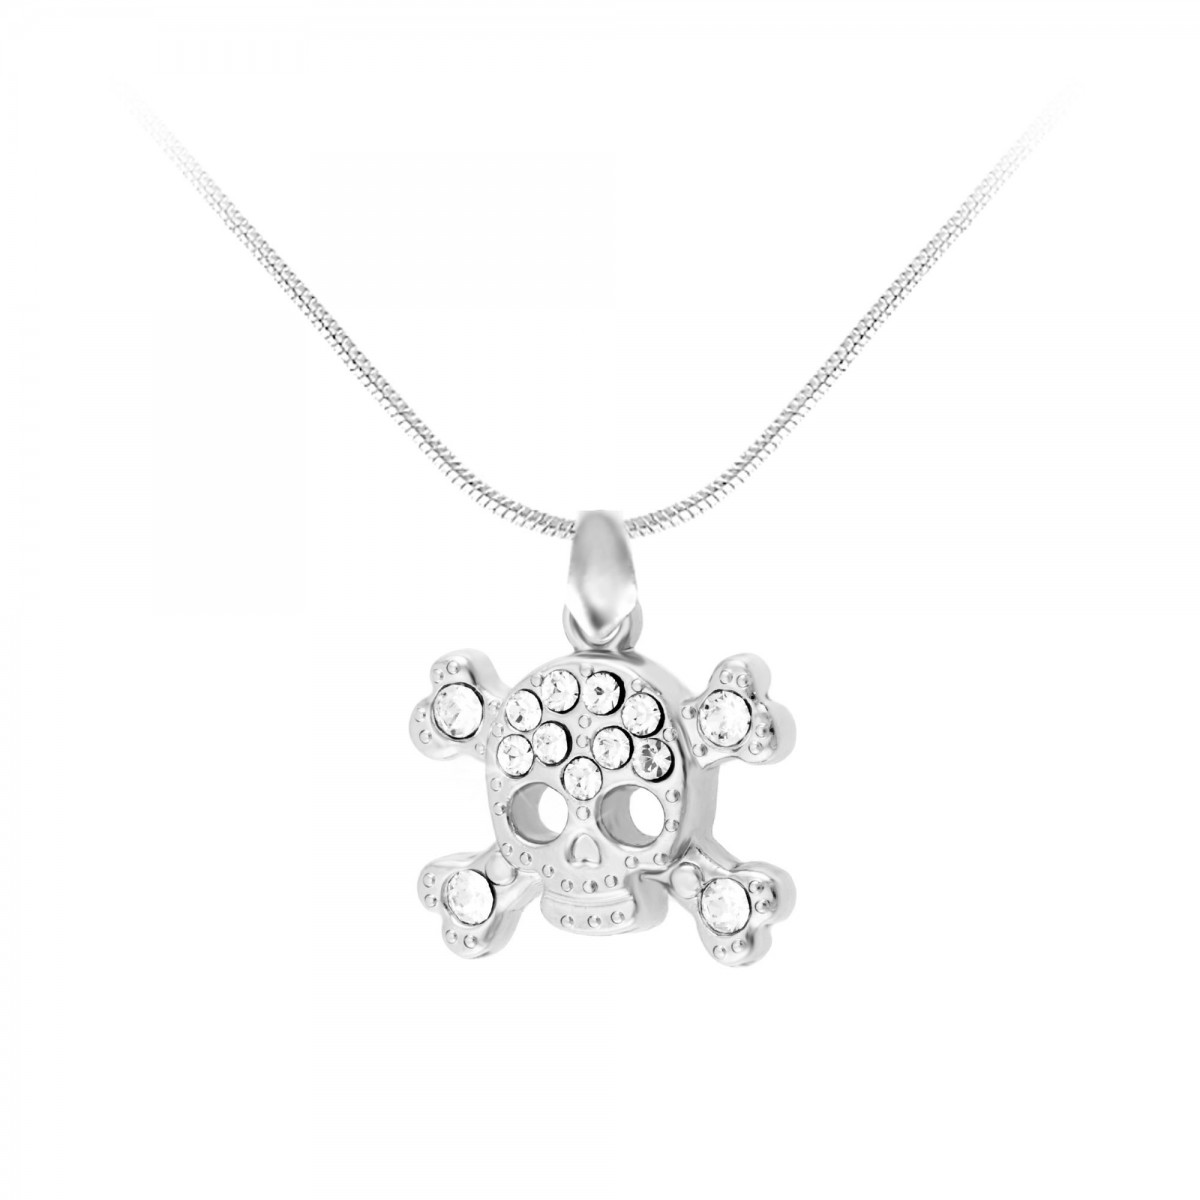 CH0120-ARGENT-SN016 Collier tête de mort So Charm made with crystals from Swarovski